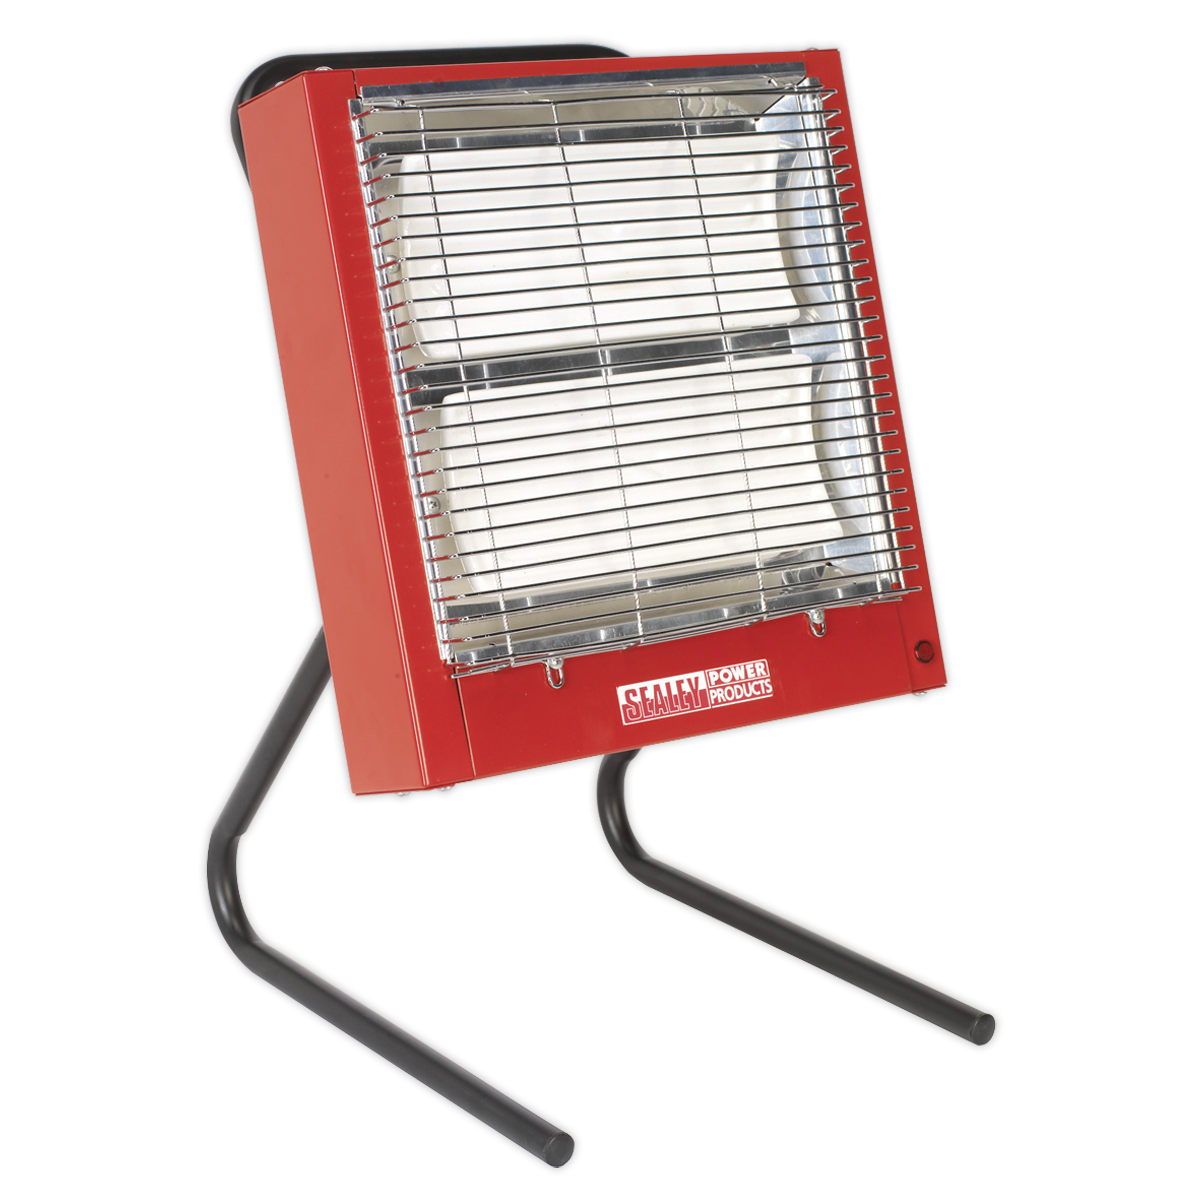 Ceramic Heater 1.4/2.8kW 230V